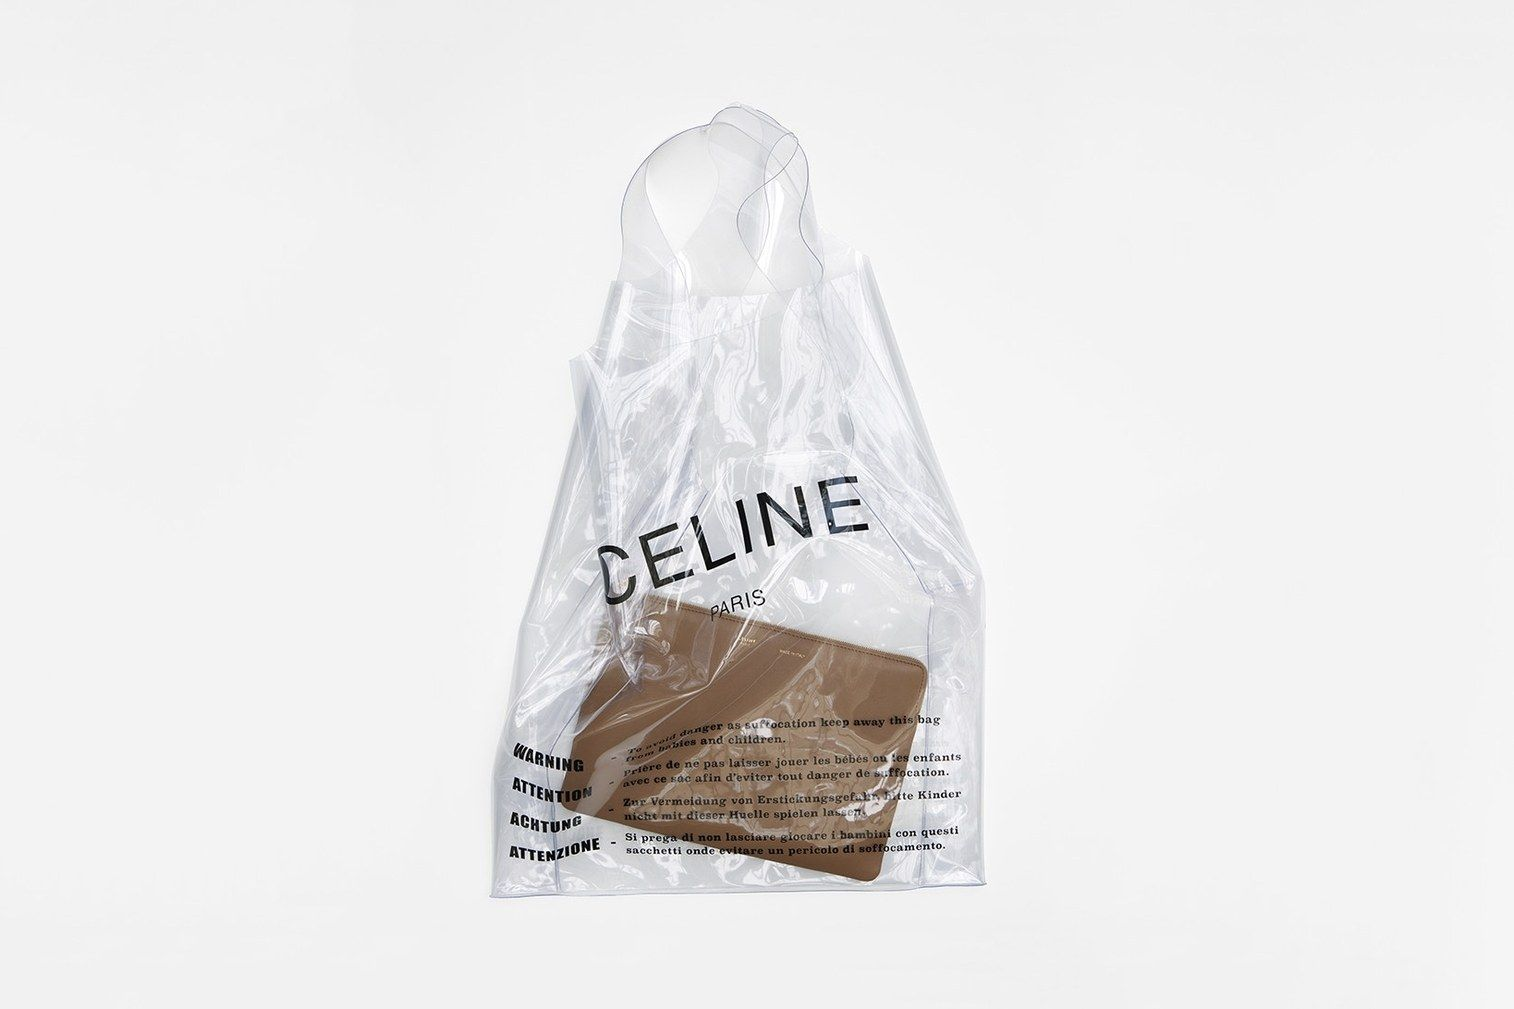 Céline Designs  590 Plastic Bags That Look Like Free Ones from the ... cc817d4e0e979